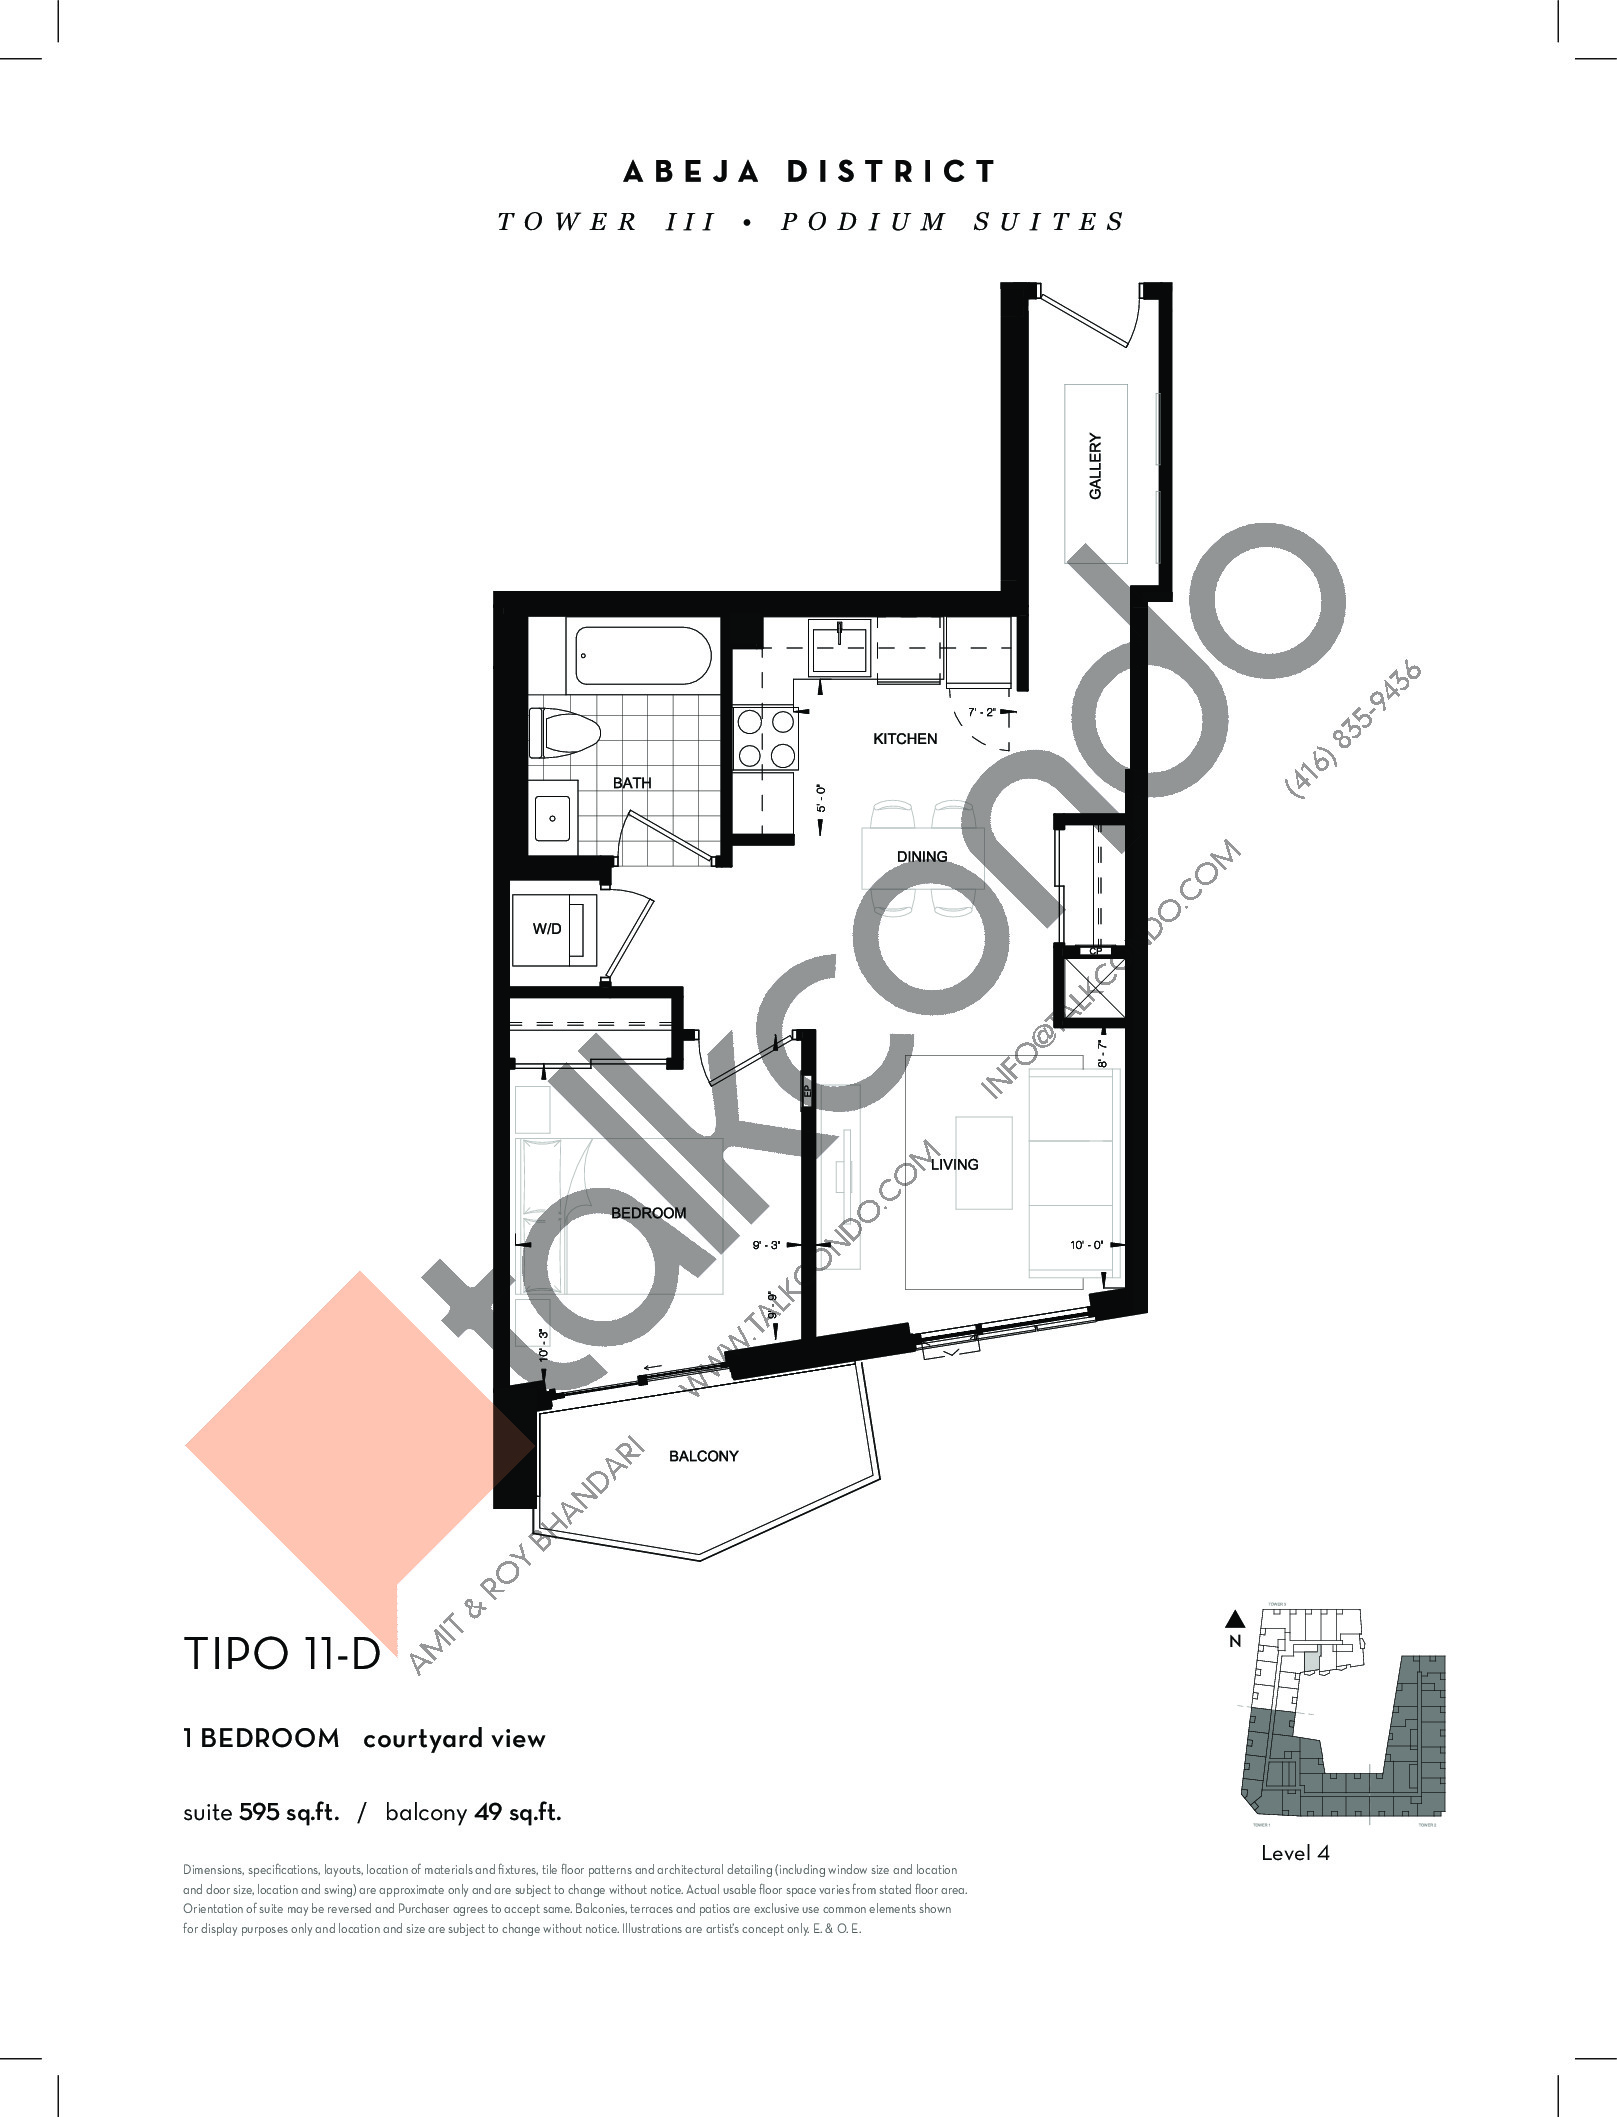 TIPO 11-D Floor Plan at Abeja District Condos Tower 3 - 595 sq.ft